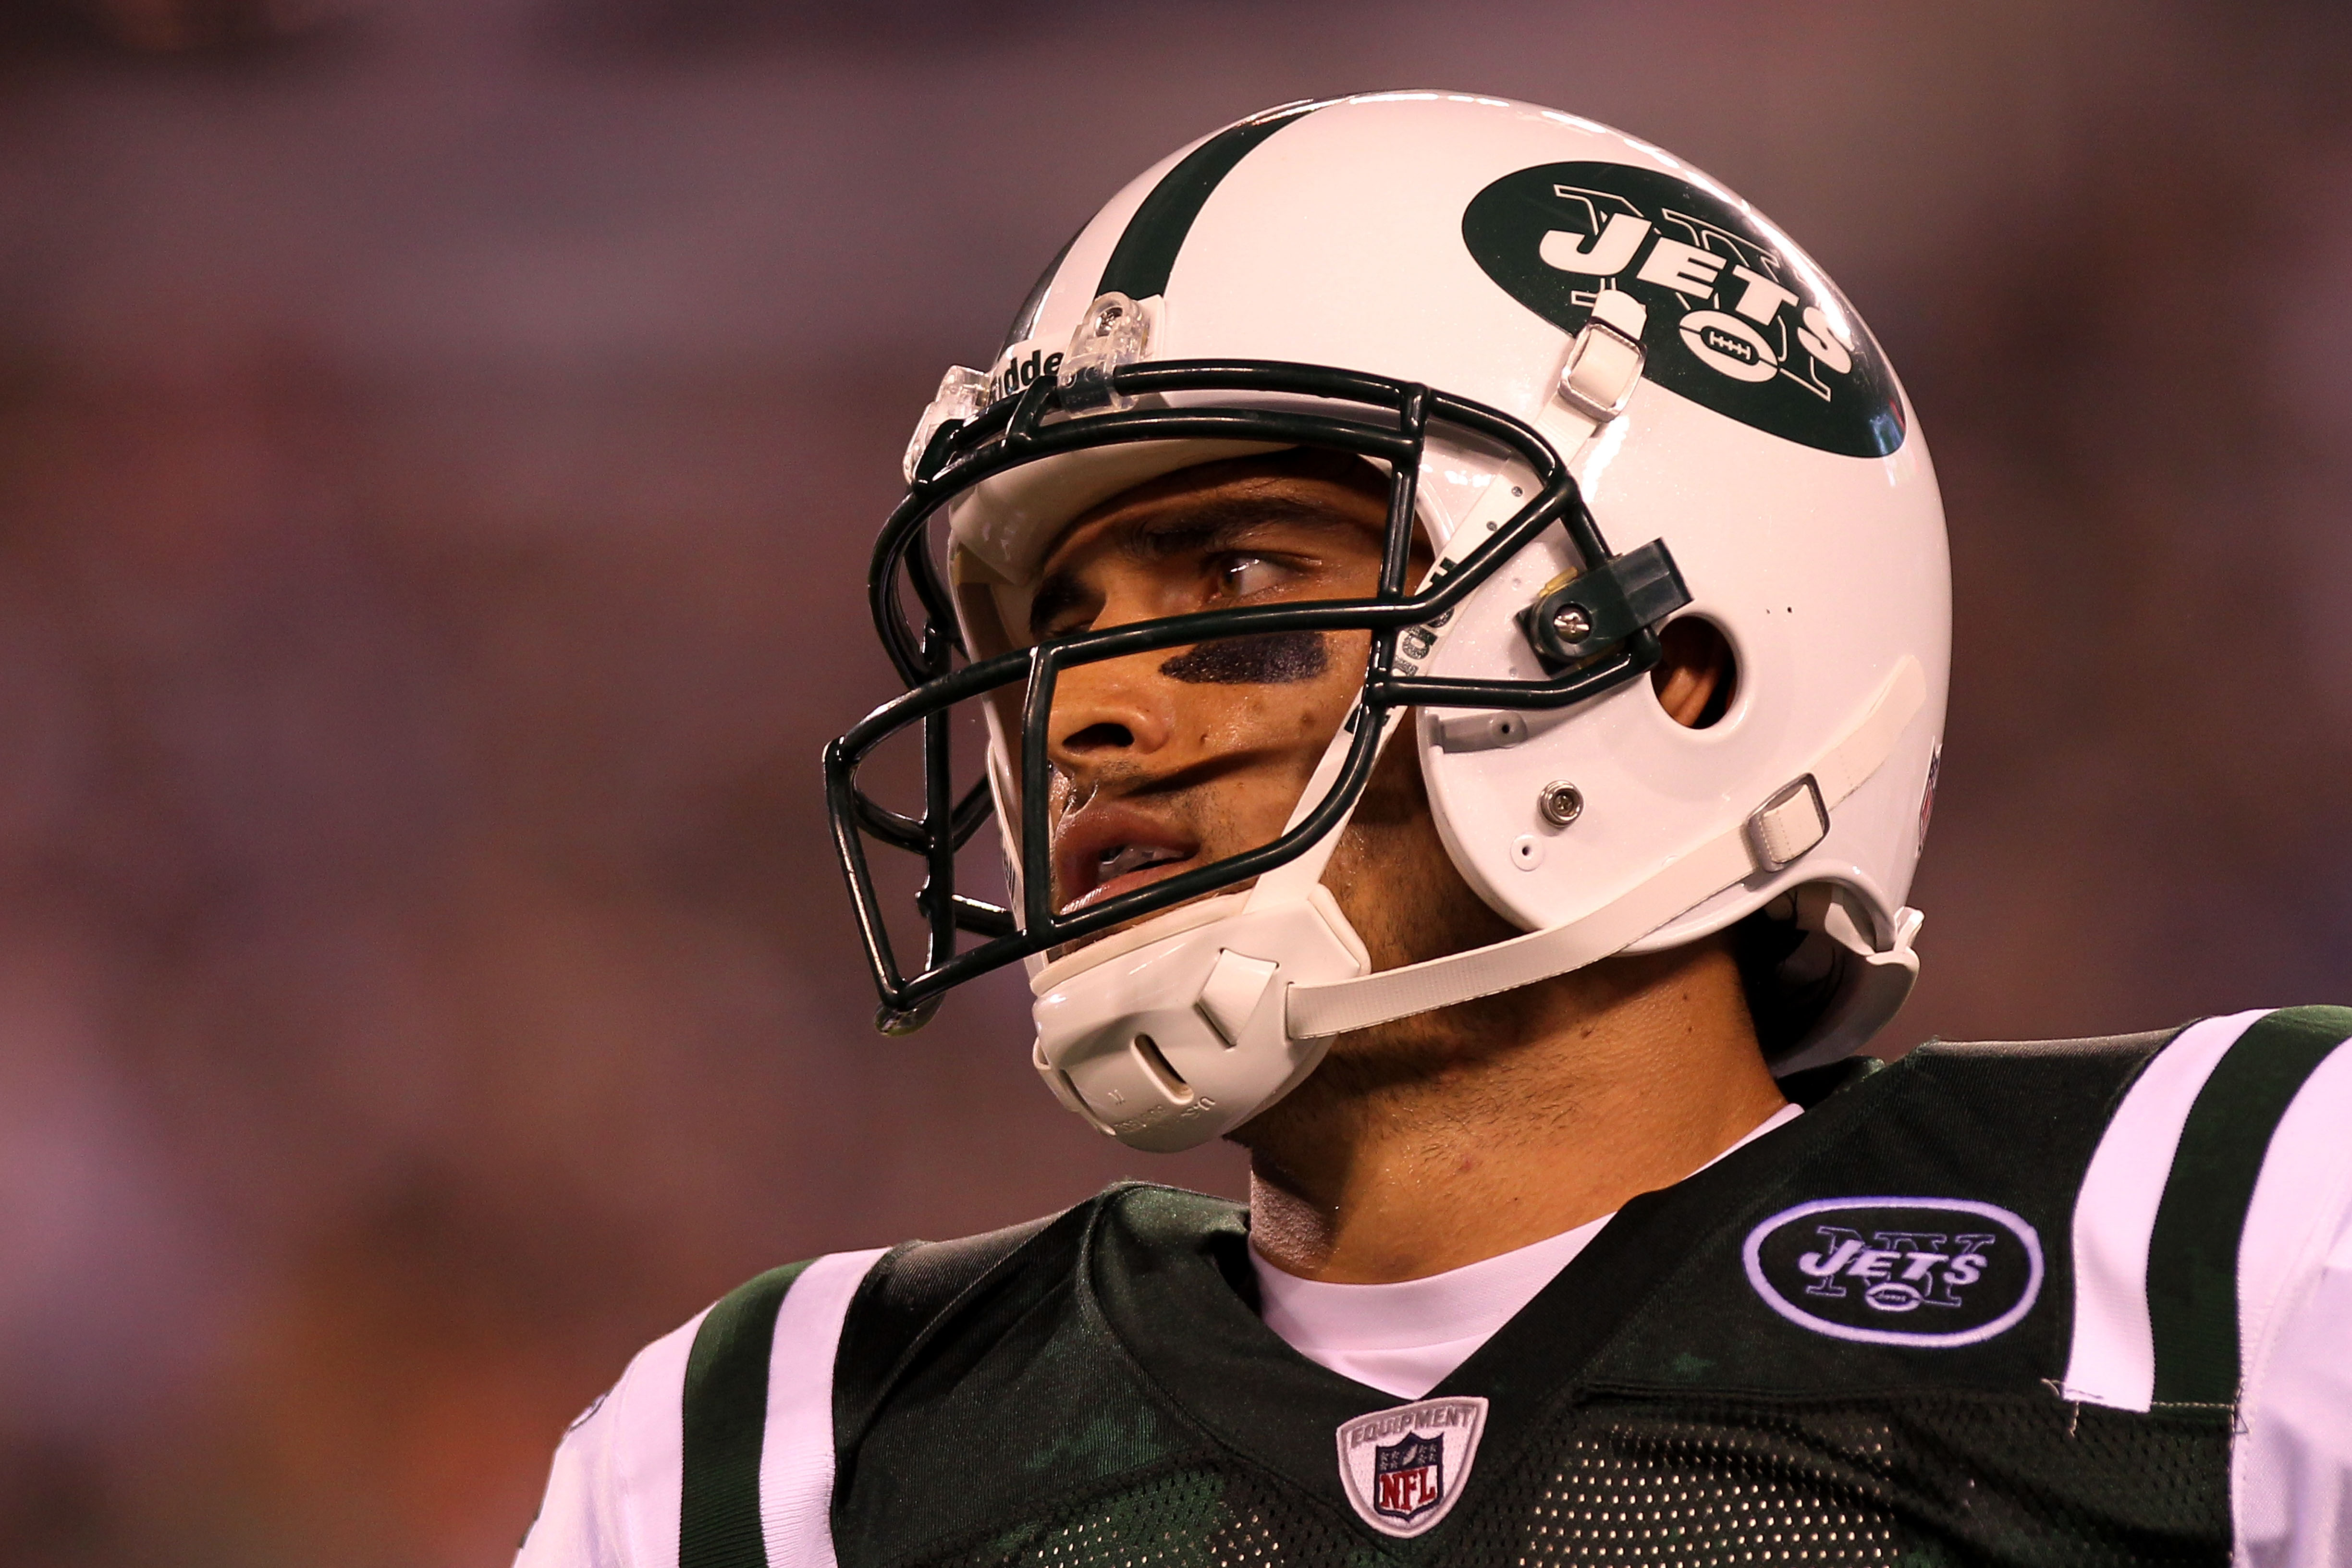 EAST RUTHERFORD, NJ - AUGUST 16:  Quarterback Mark Sanchez #6 of the New York Jets walks off the field against the New York Giants during their game at New Meadowlands Stadium on August 16, 2010 in East Rutherford, New Jersey.  (Photo by Nick Laham/Getty